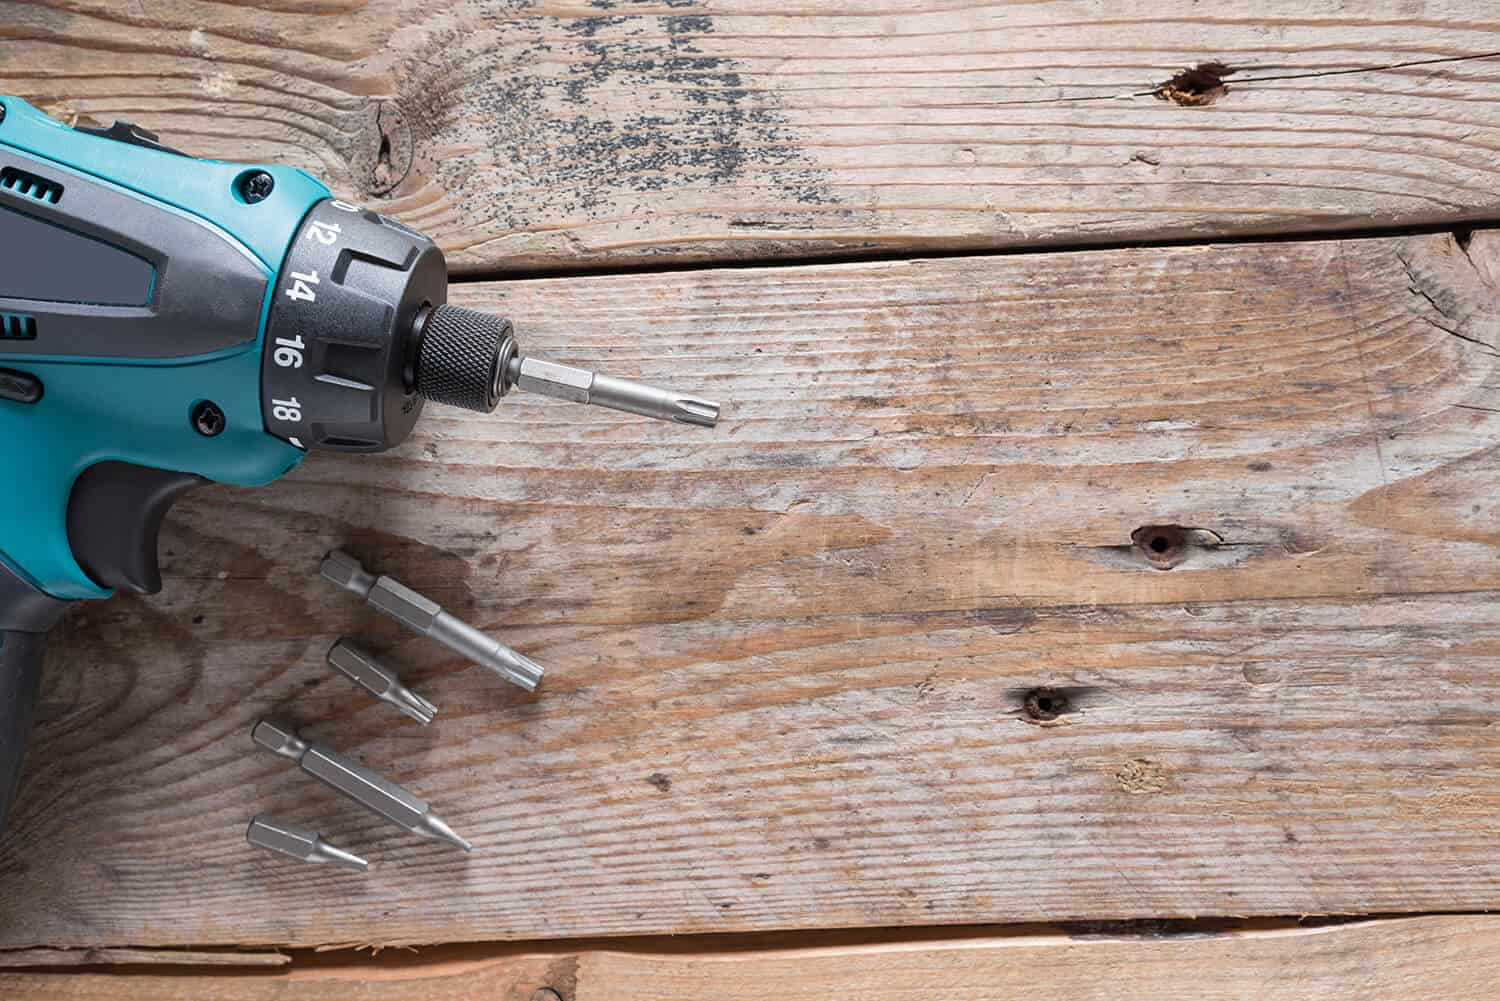 How Does an Impact Driver Compare to a Cordless Drill Driver